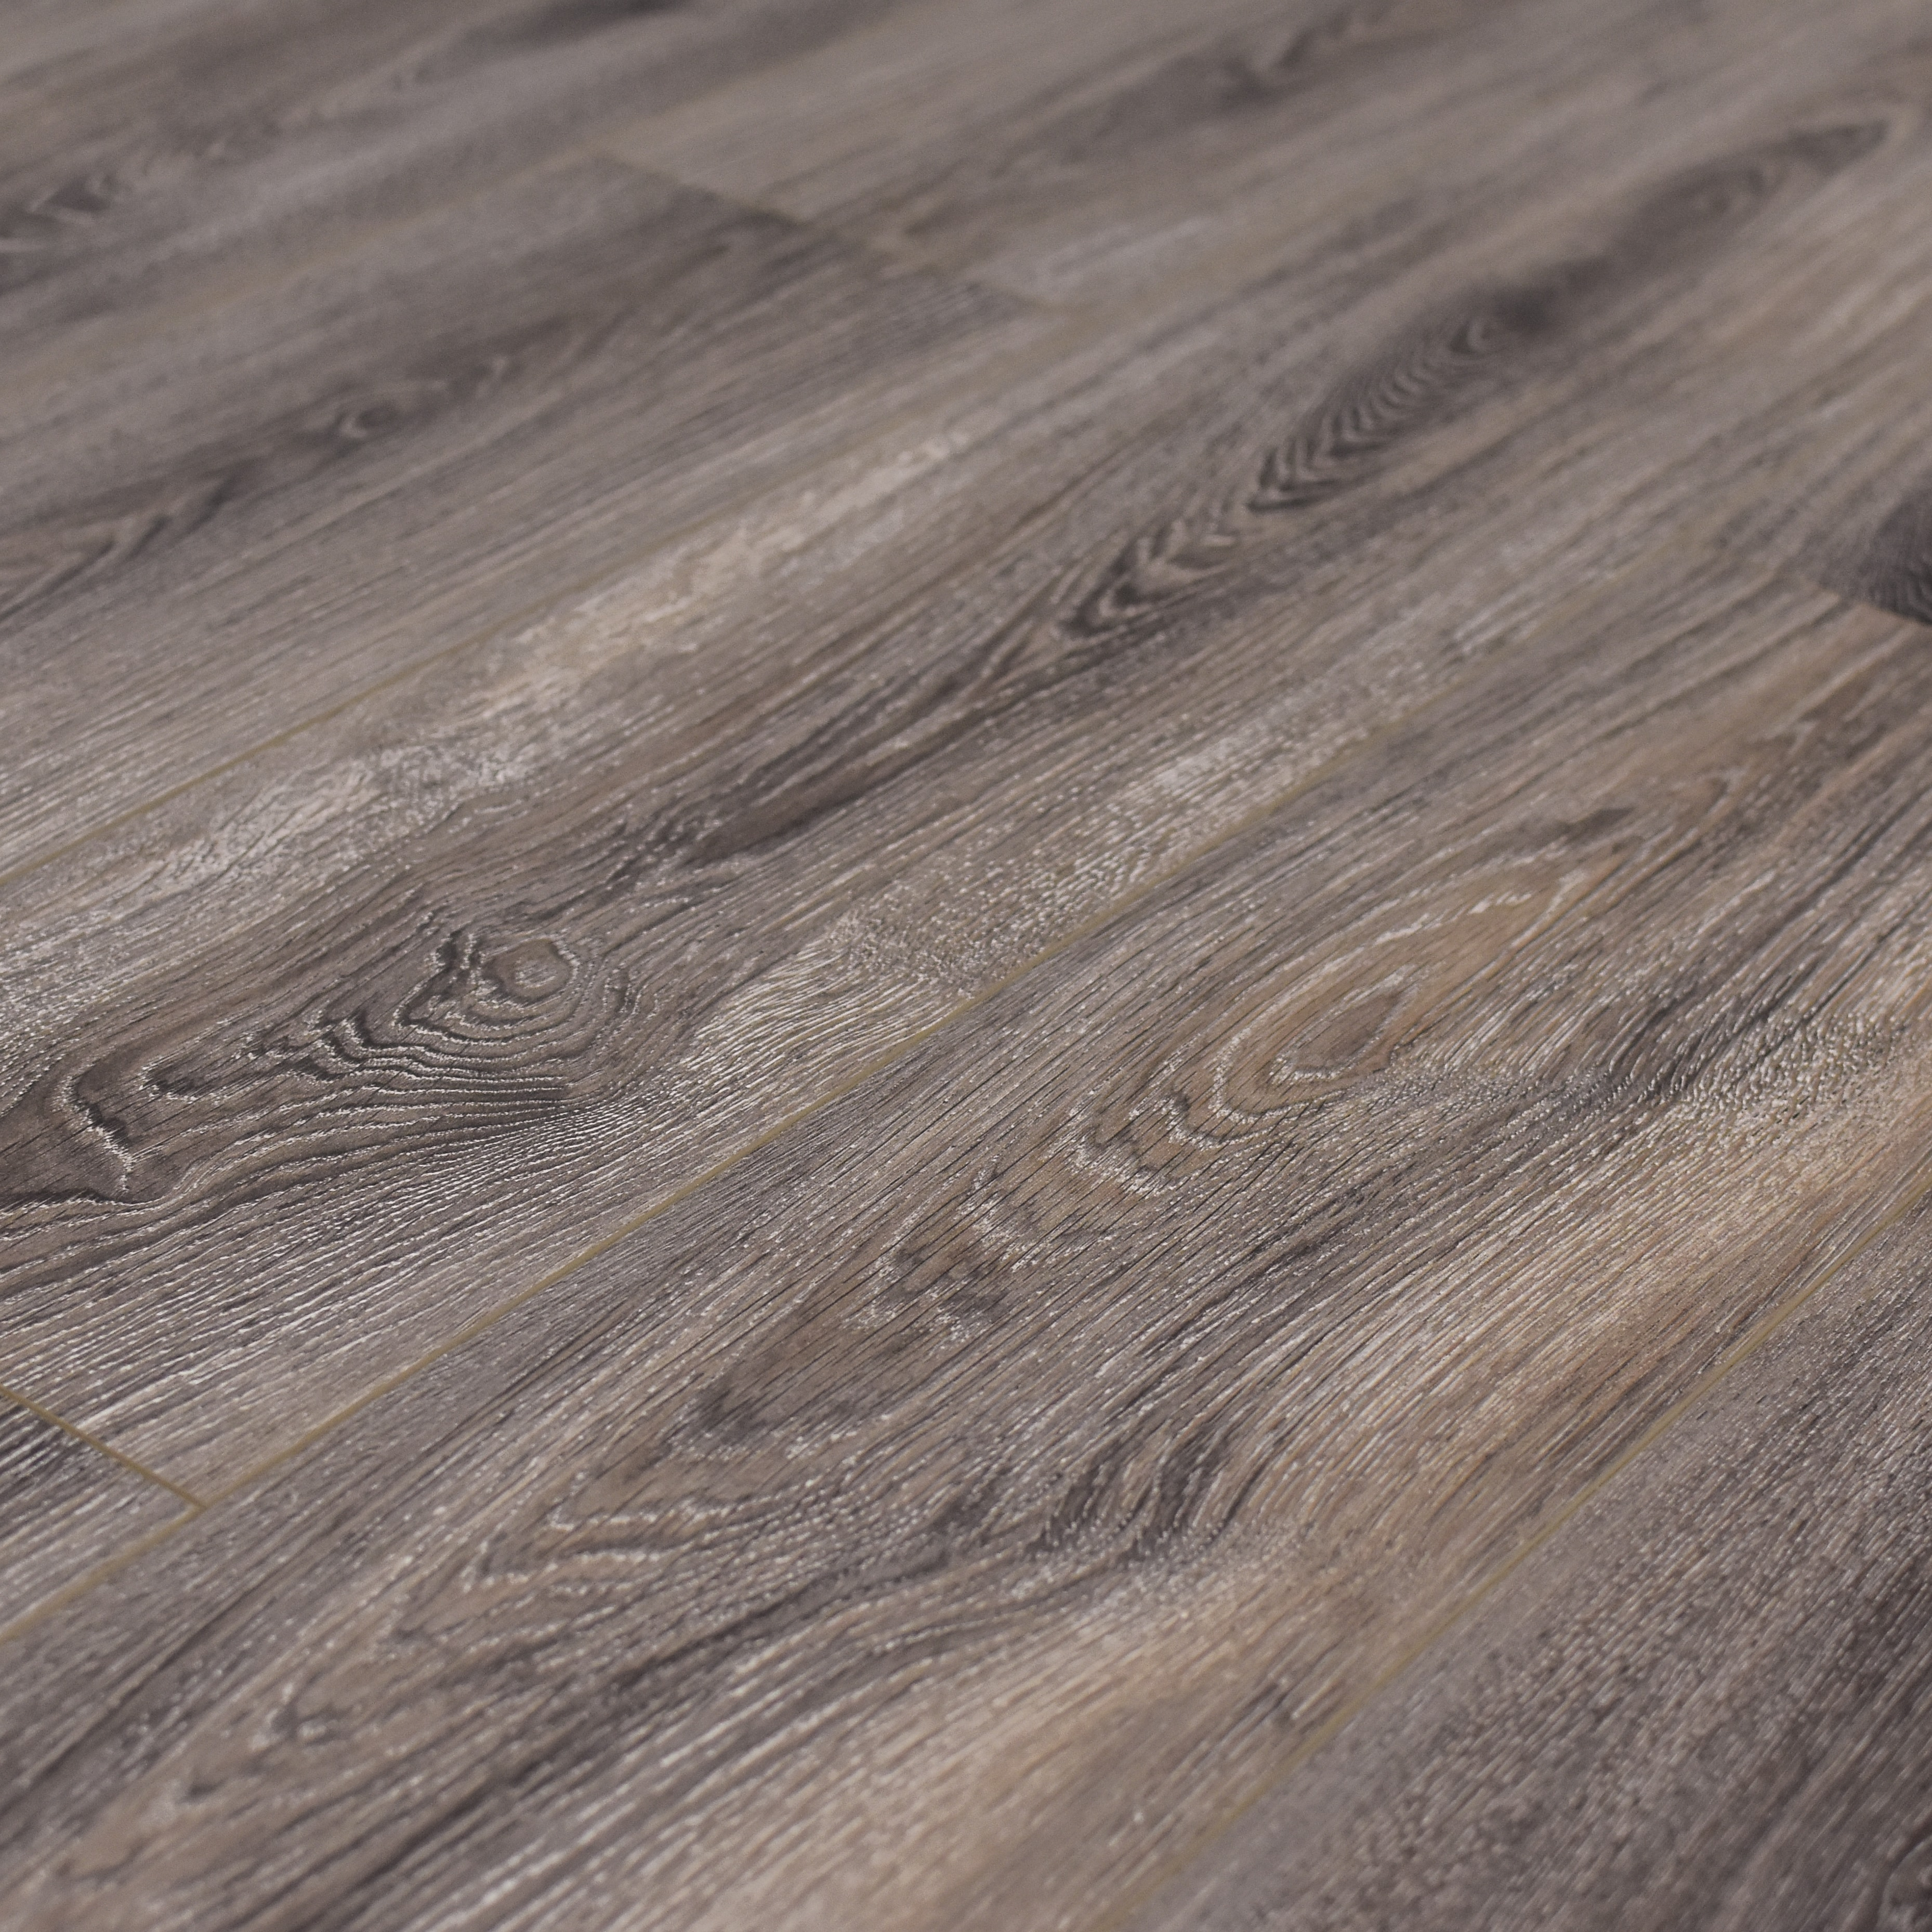 Patent Iron / 12 / AC3 Laminate - 12mm AC3 - Marquis Collection 0